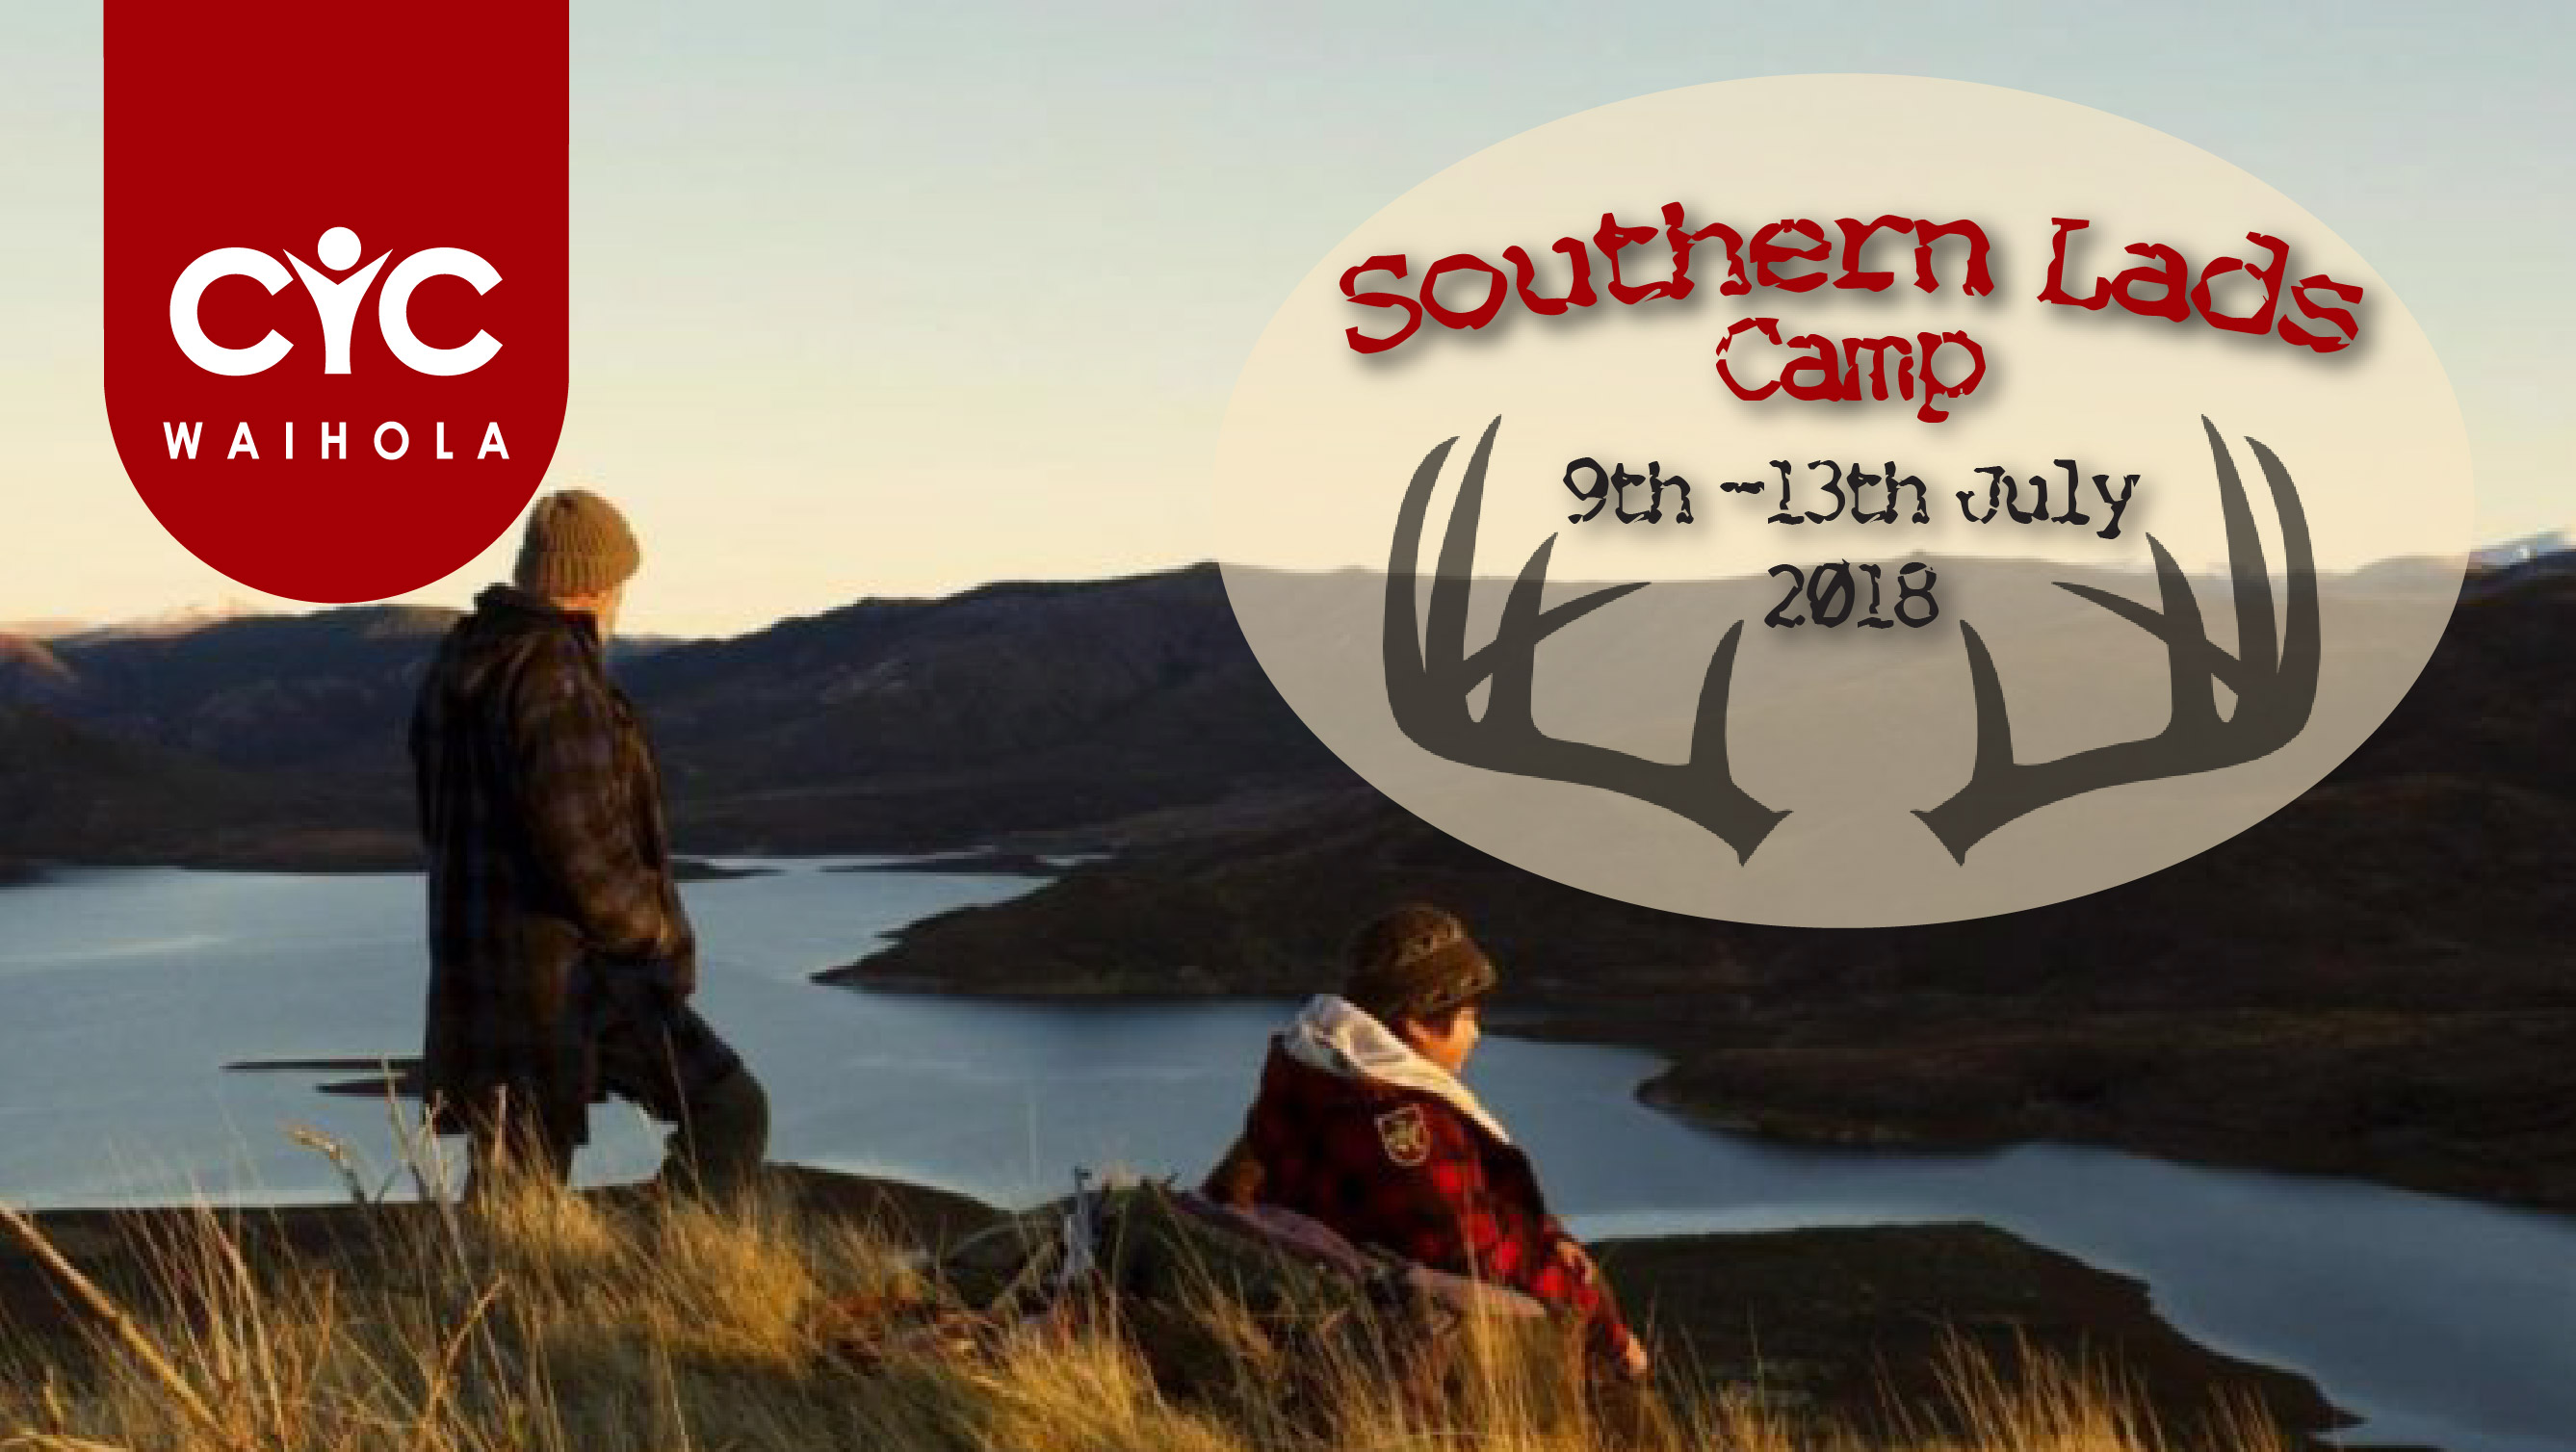 2018 Southern Lads Camp